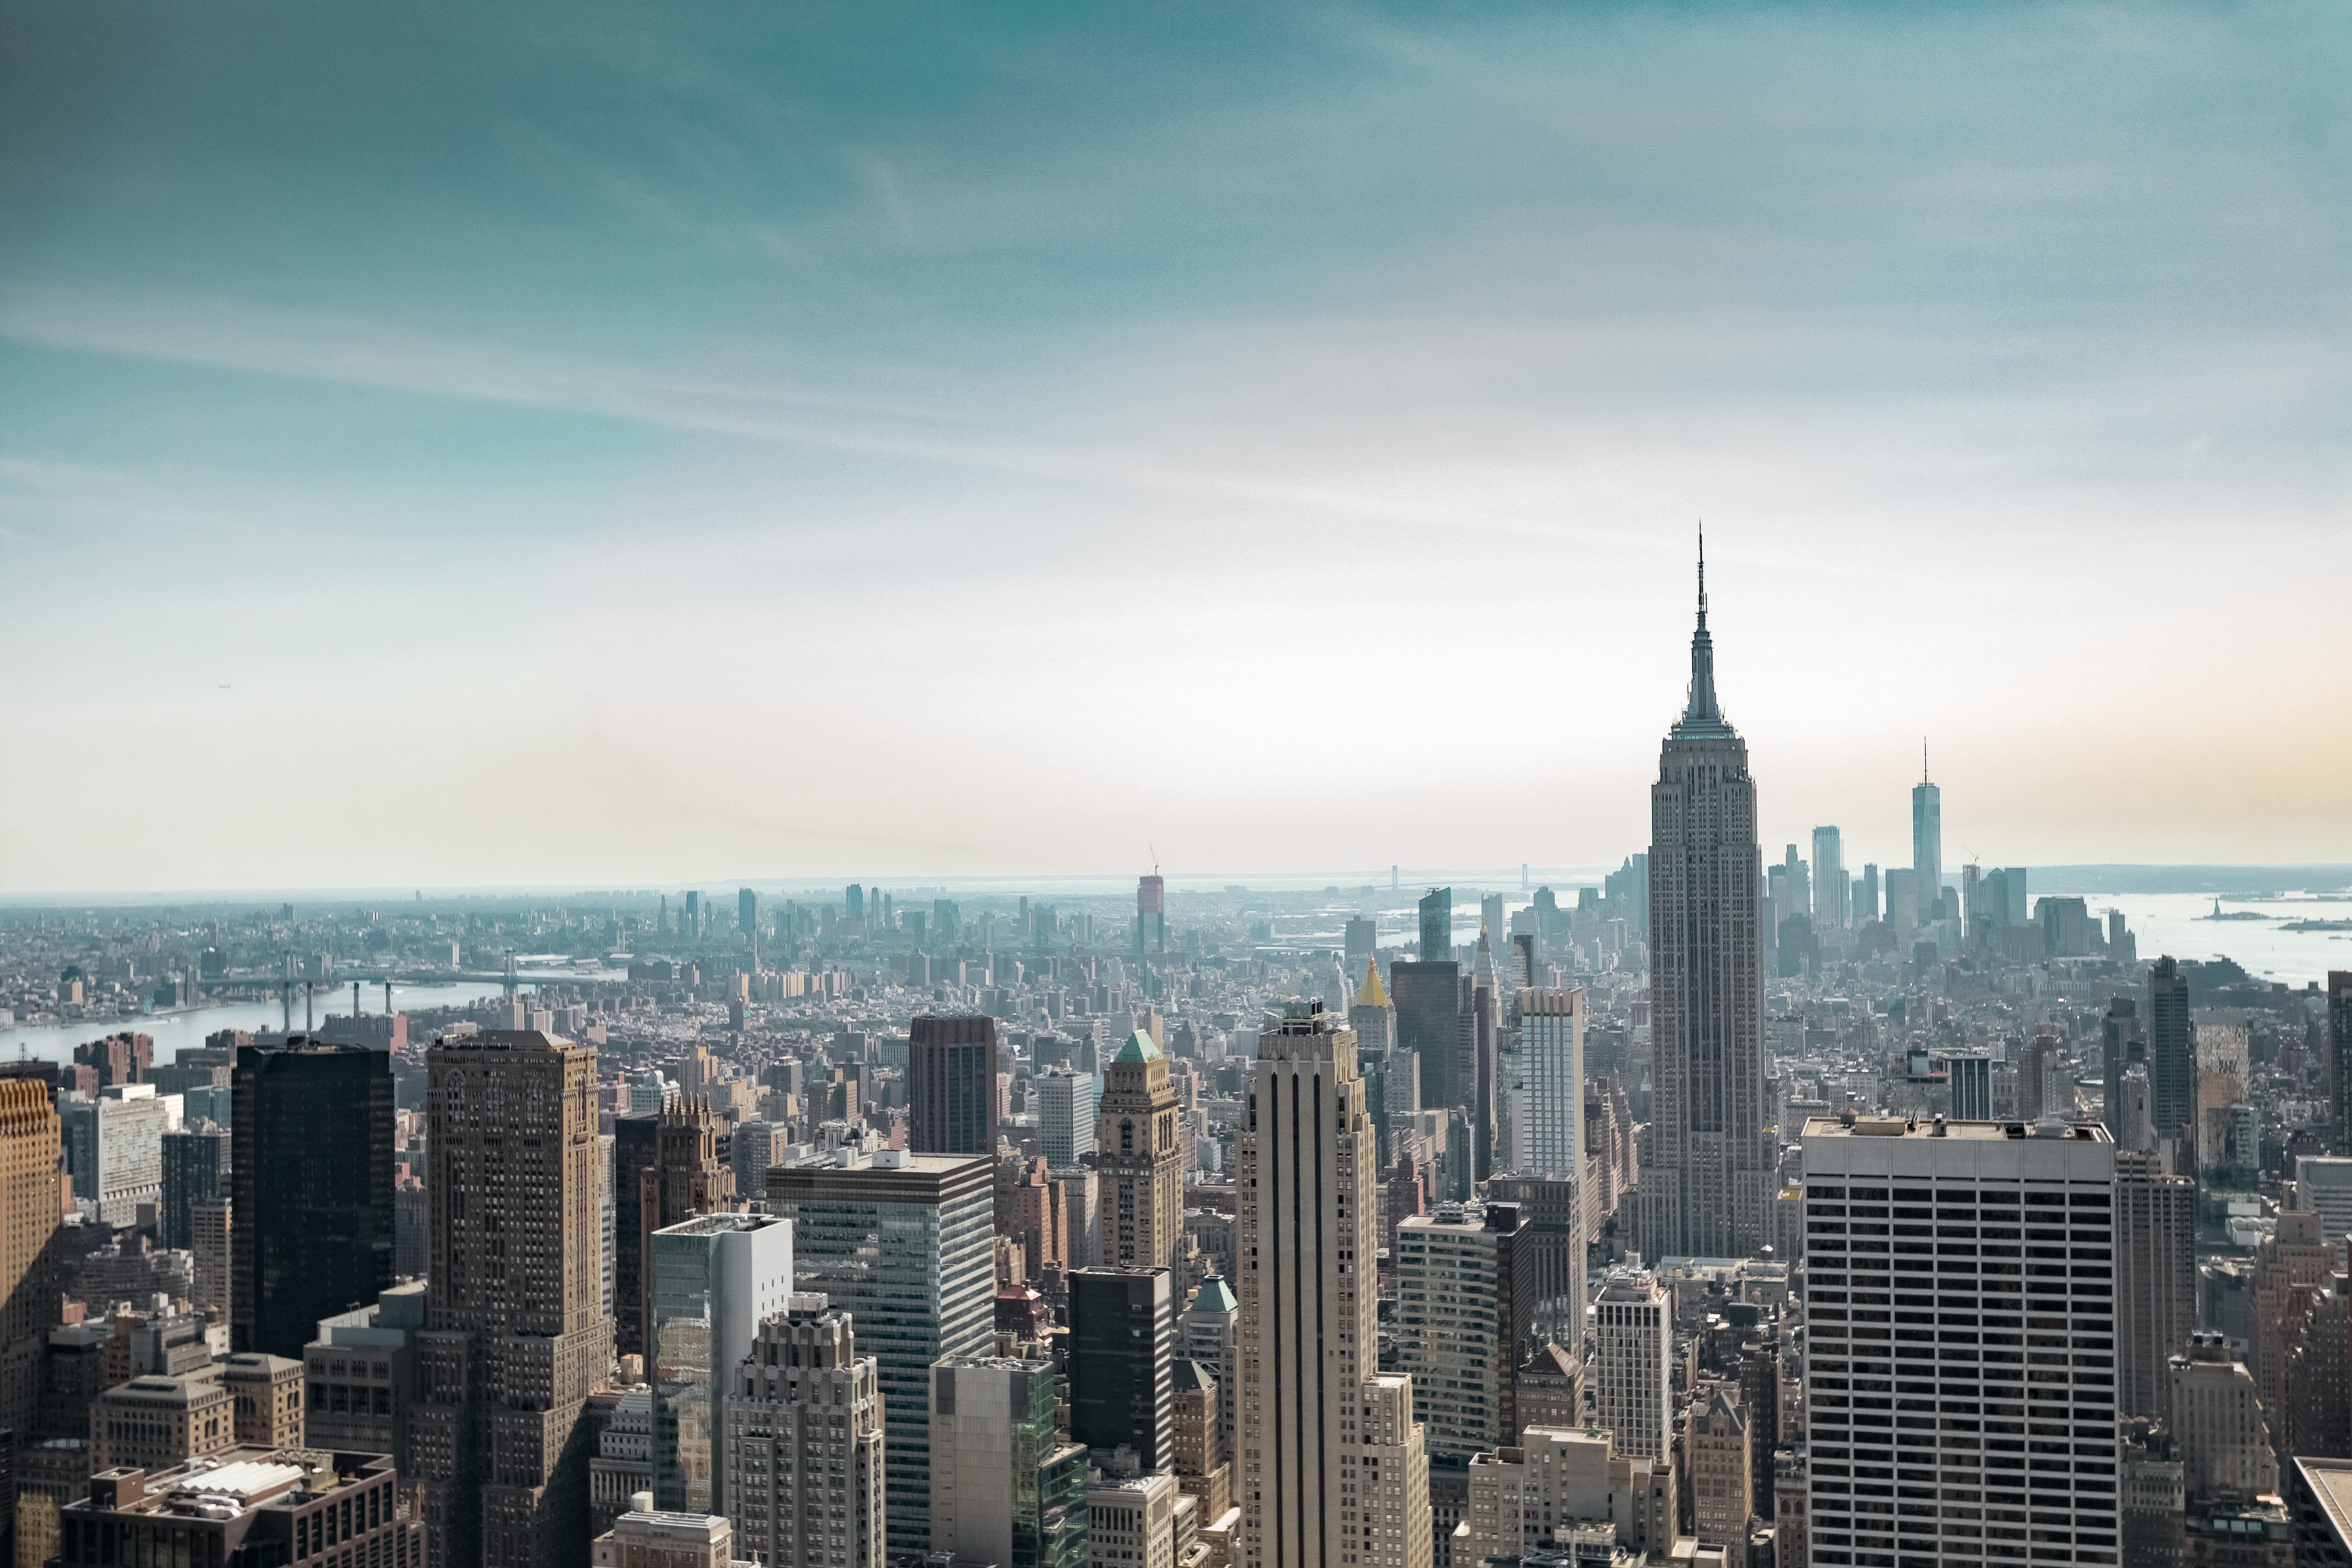 Lanskap udara New York City, Rockefeller Center | Foto: Dorian Mongel on Unsplash